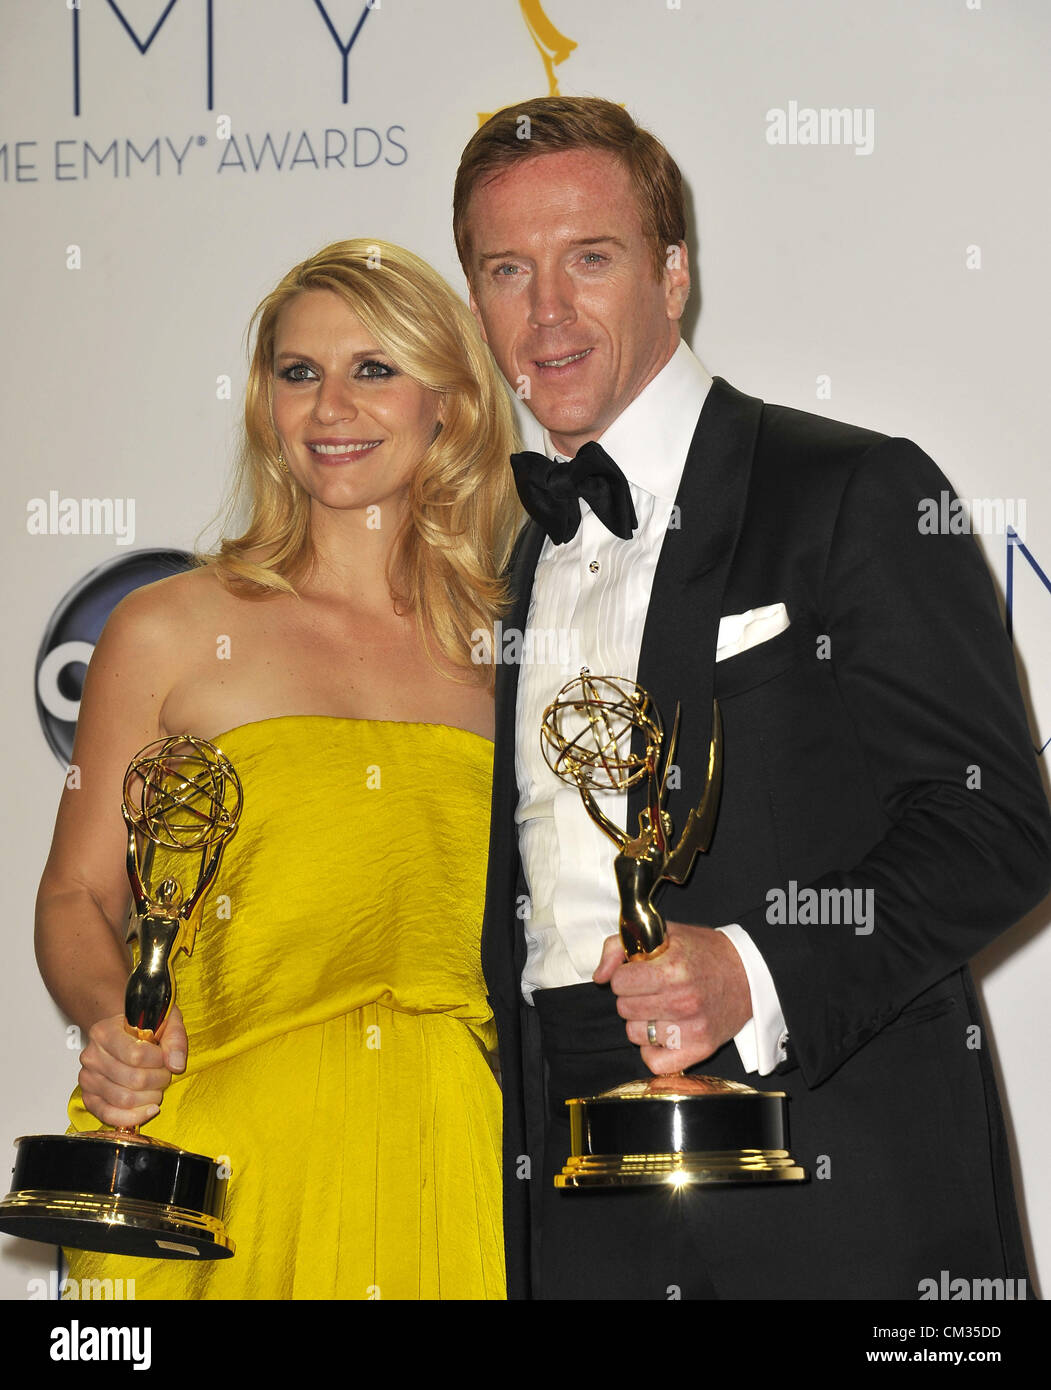 Sept. 23, 2012 - Los Angeles, California, U.S. - Actors CLAIRE DANES and DAMIAN LEWIS with their Emmys for 'Homeland' - Stock Image